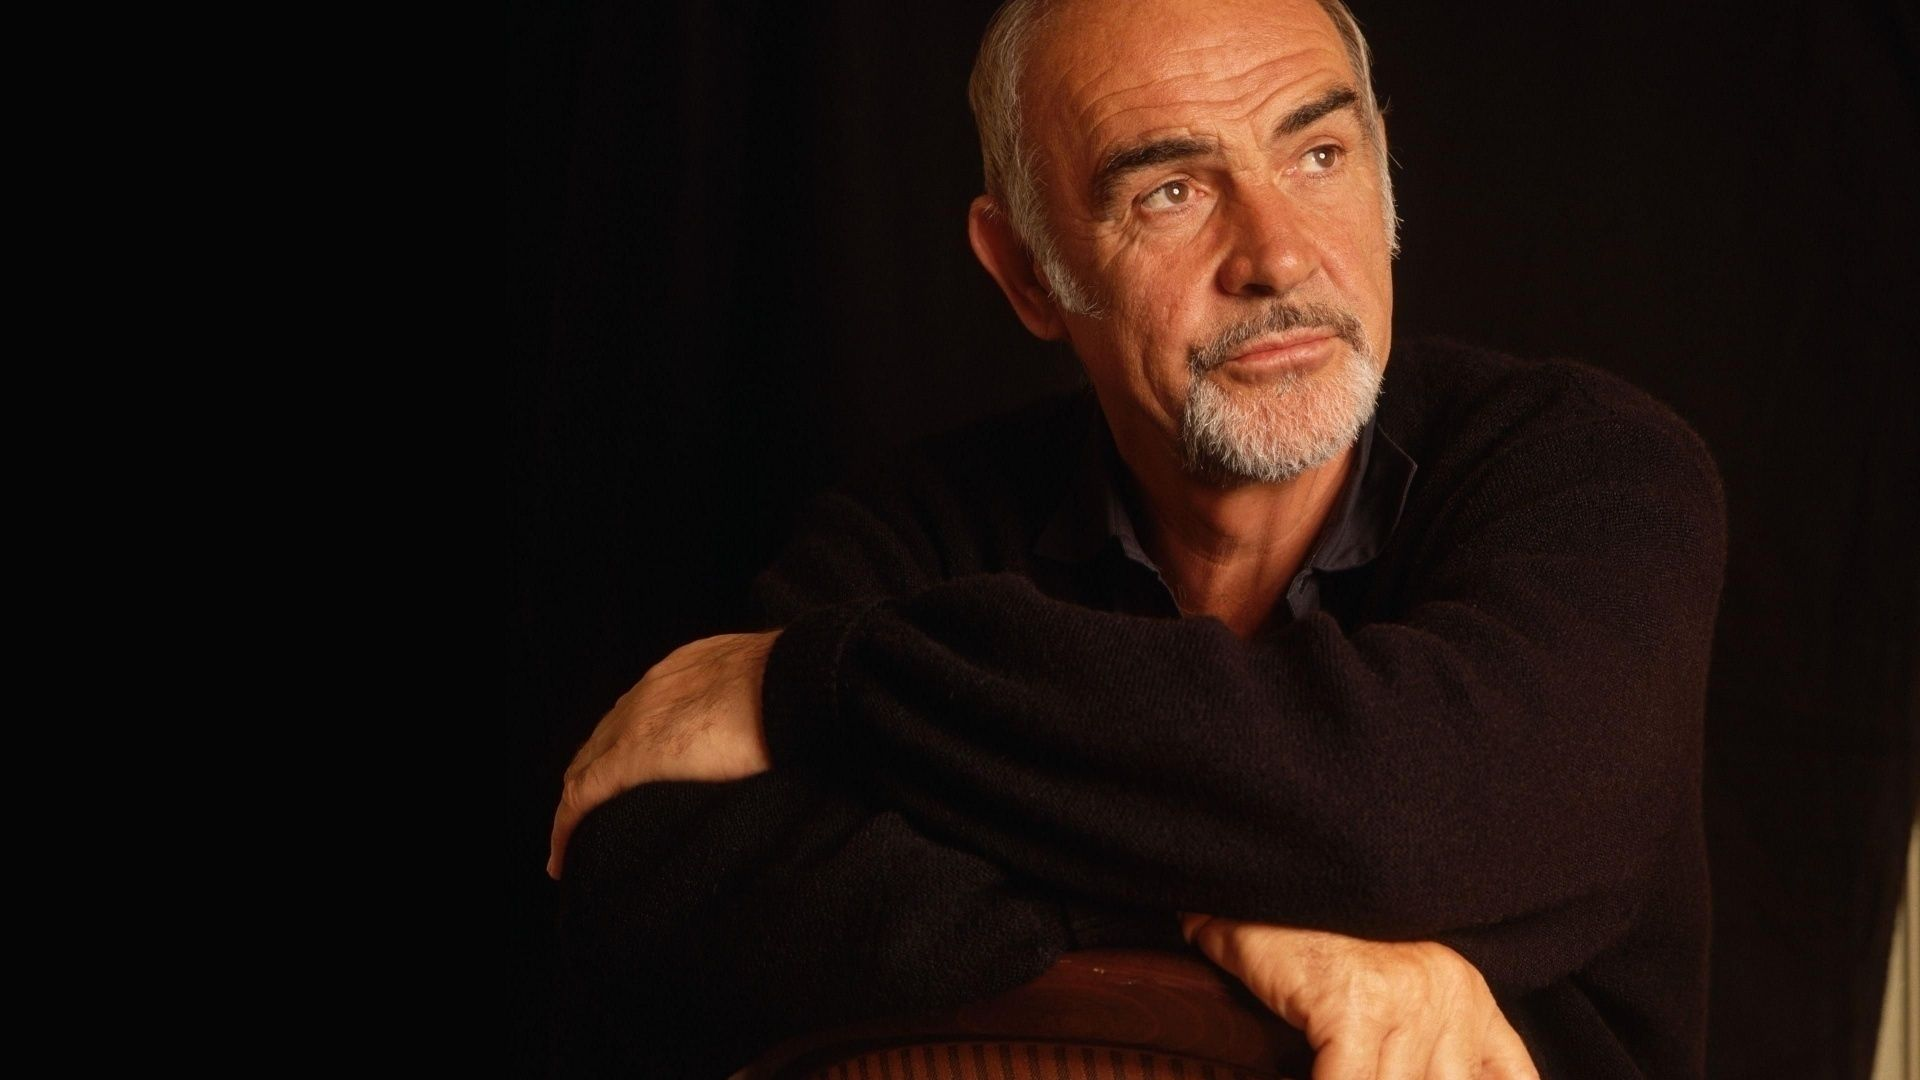 Download Wallpapers 1920x1080 Sean connery, Man, Actor, Producer